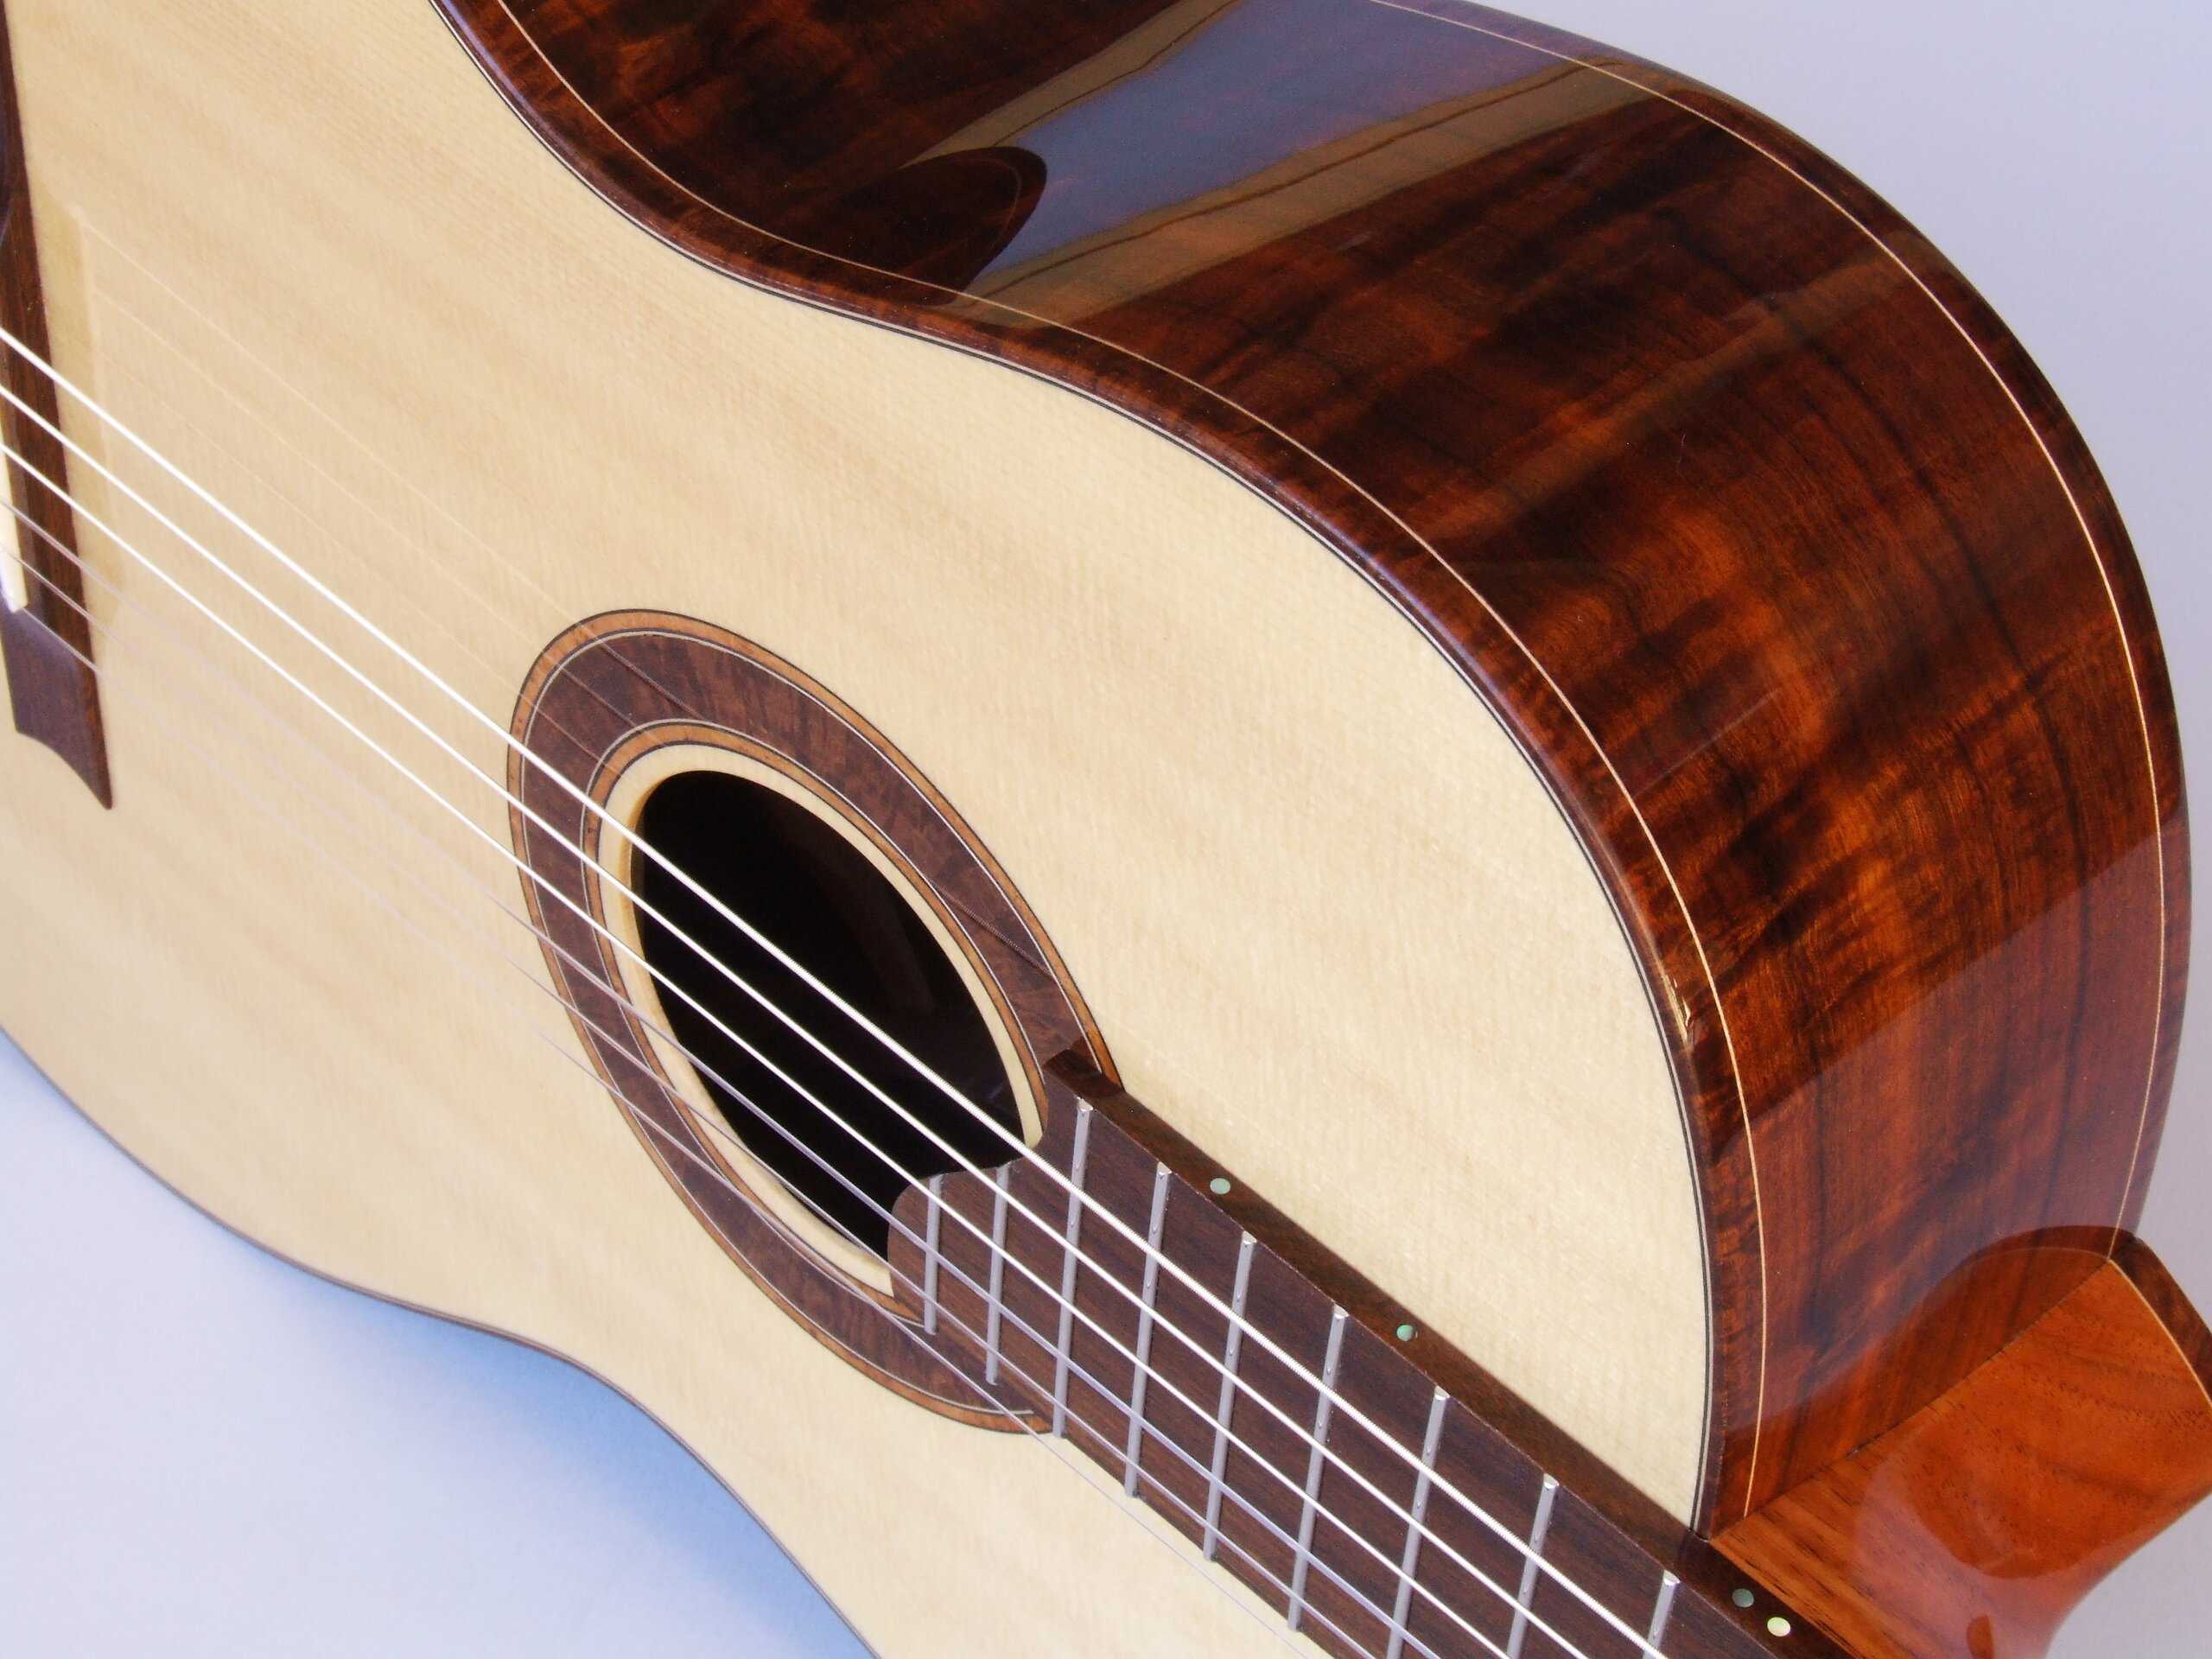 Spruce topped Gidgee classical guitar